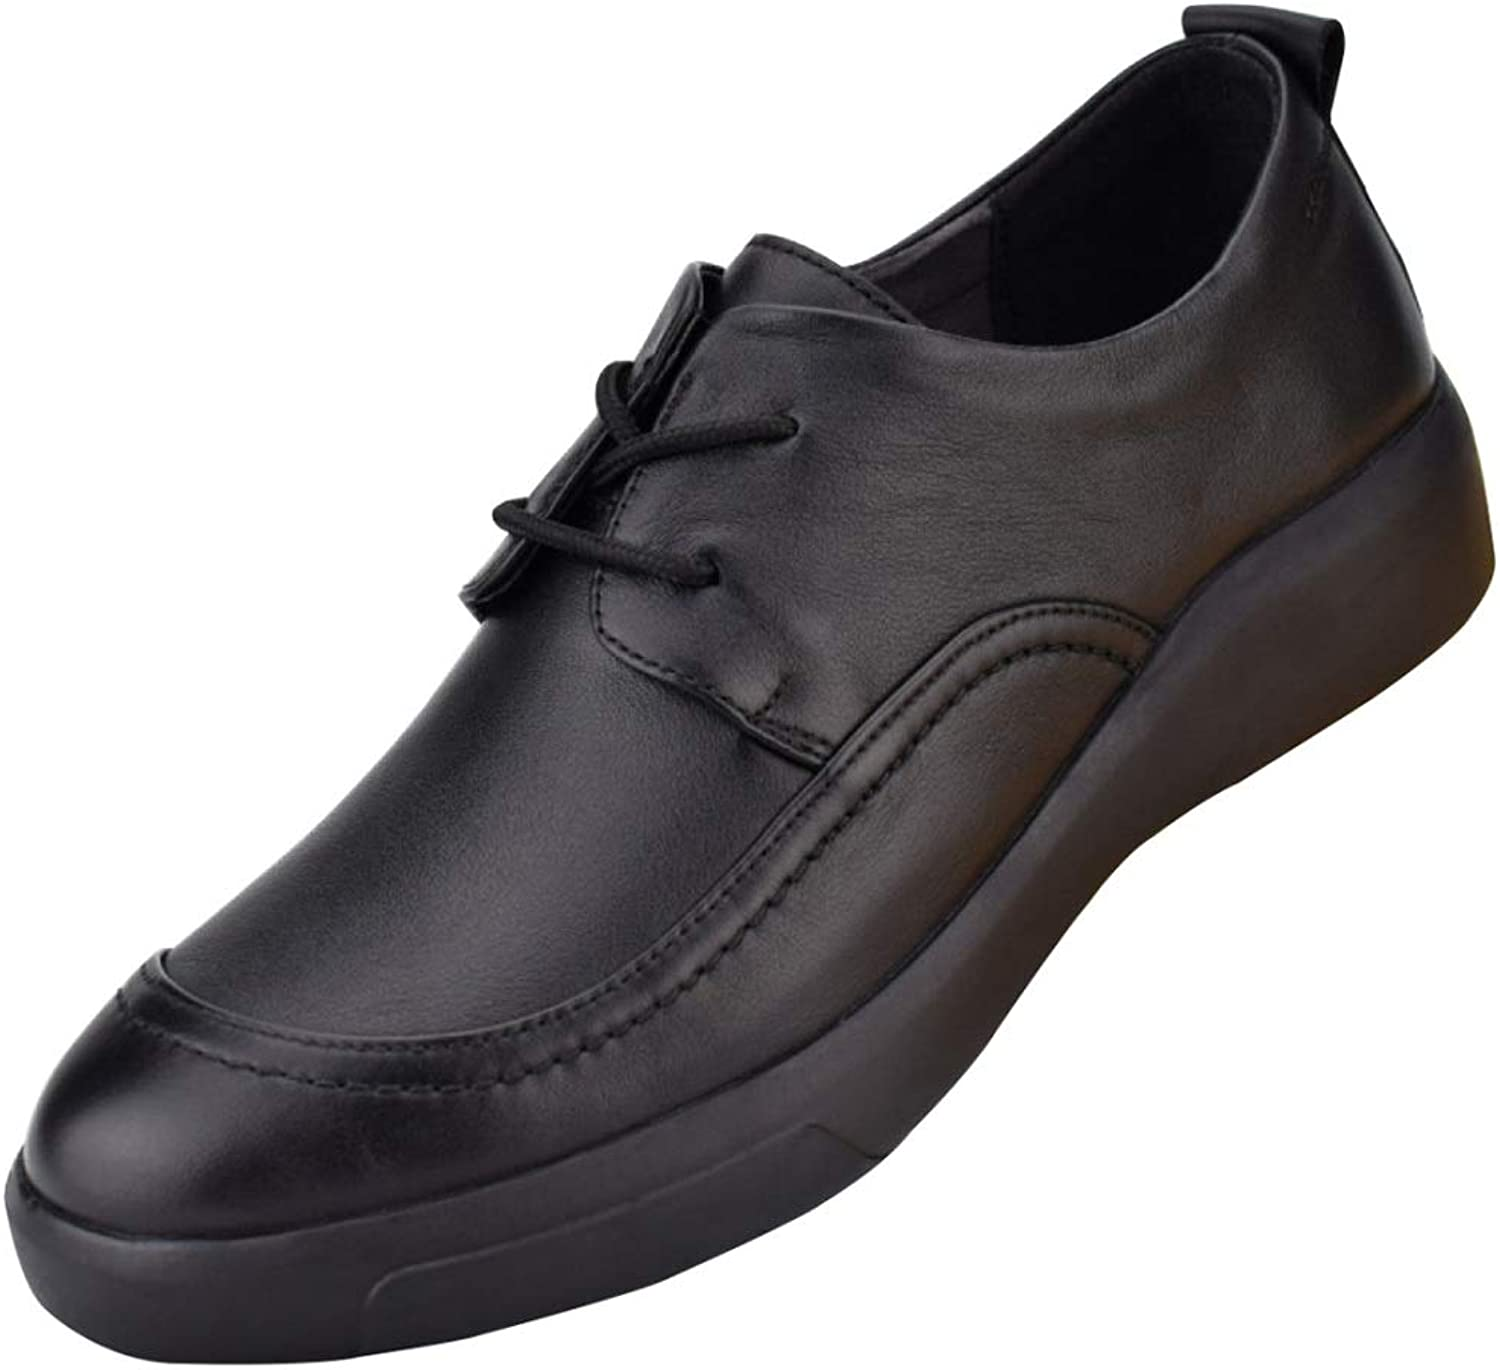 Men's Lace Up Derby Business Casual shoes Soft Leather Driving shoes